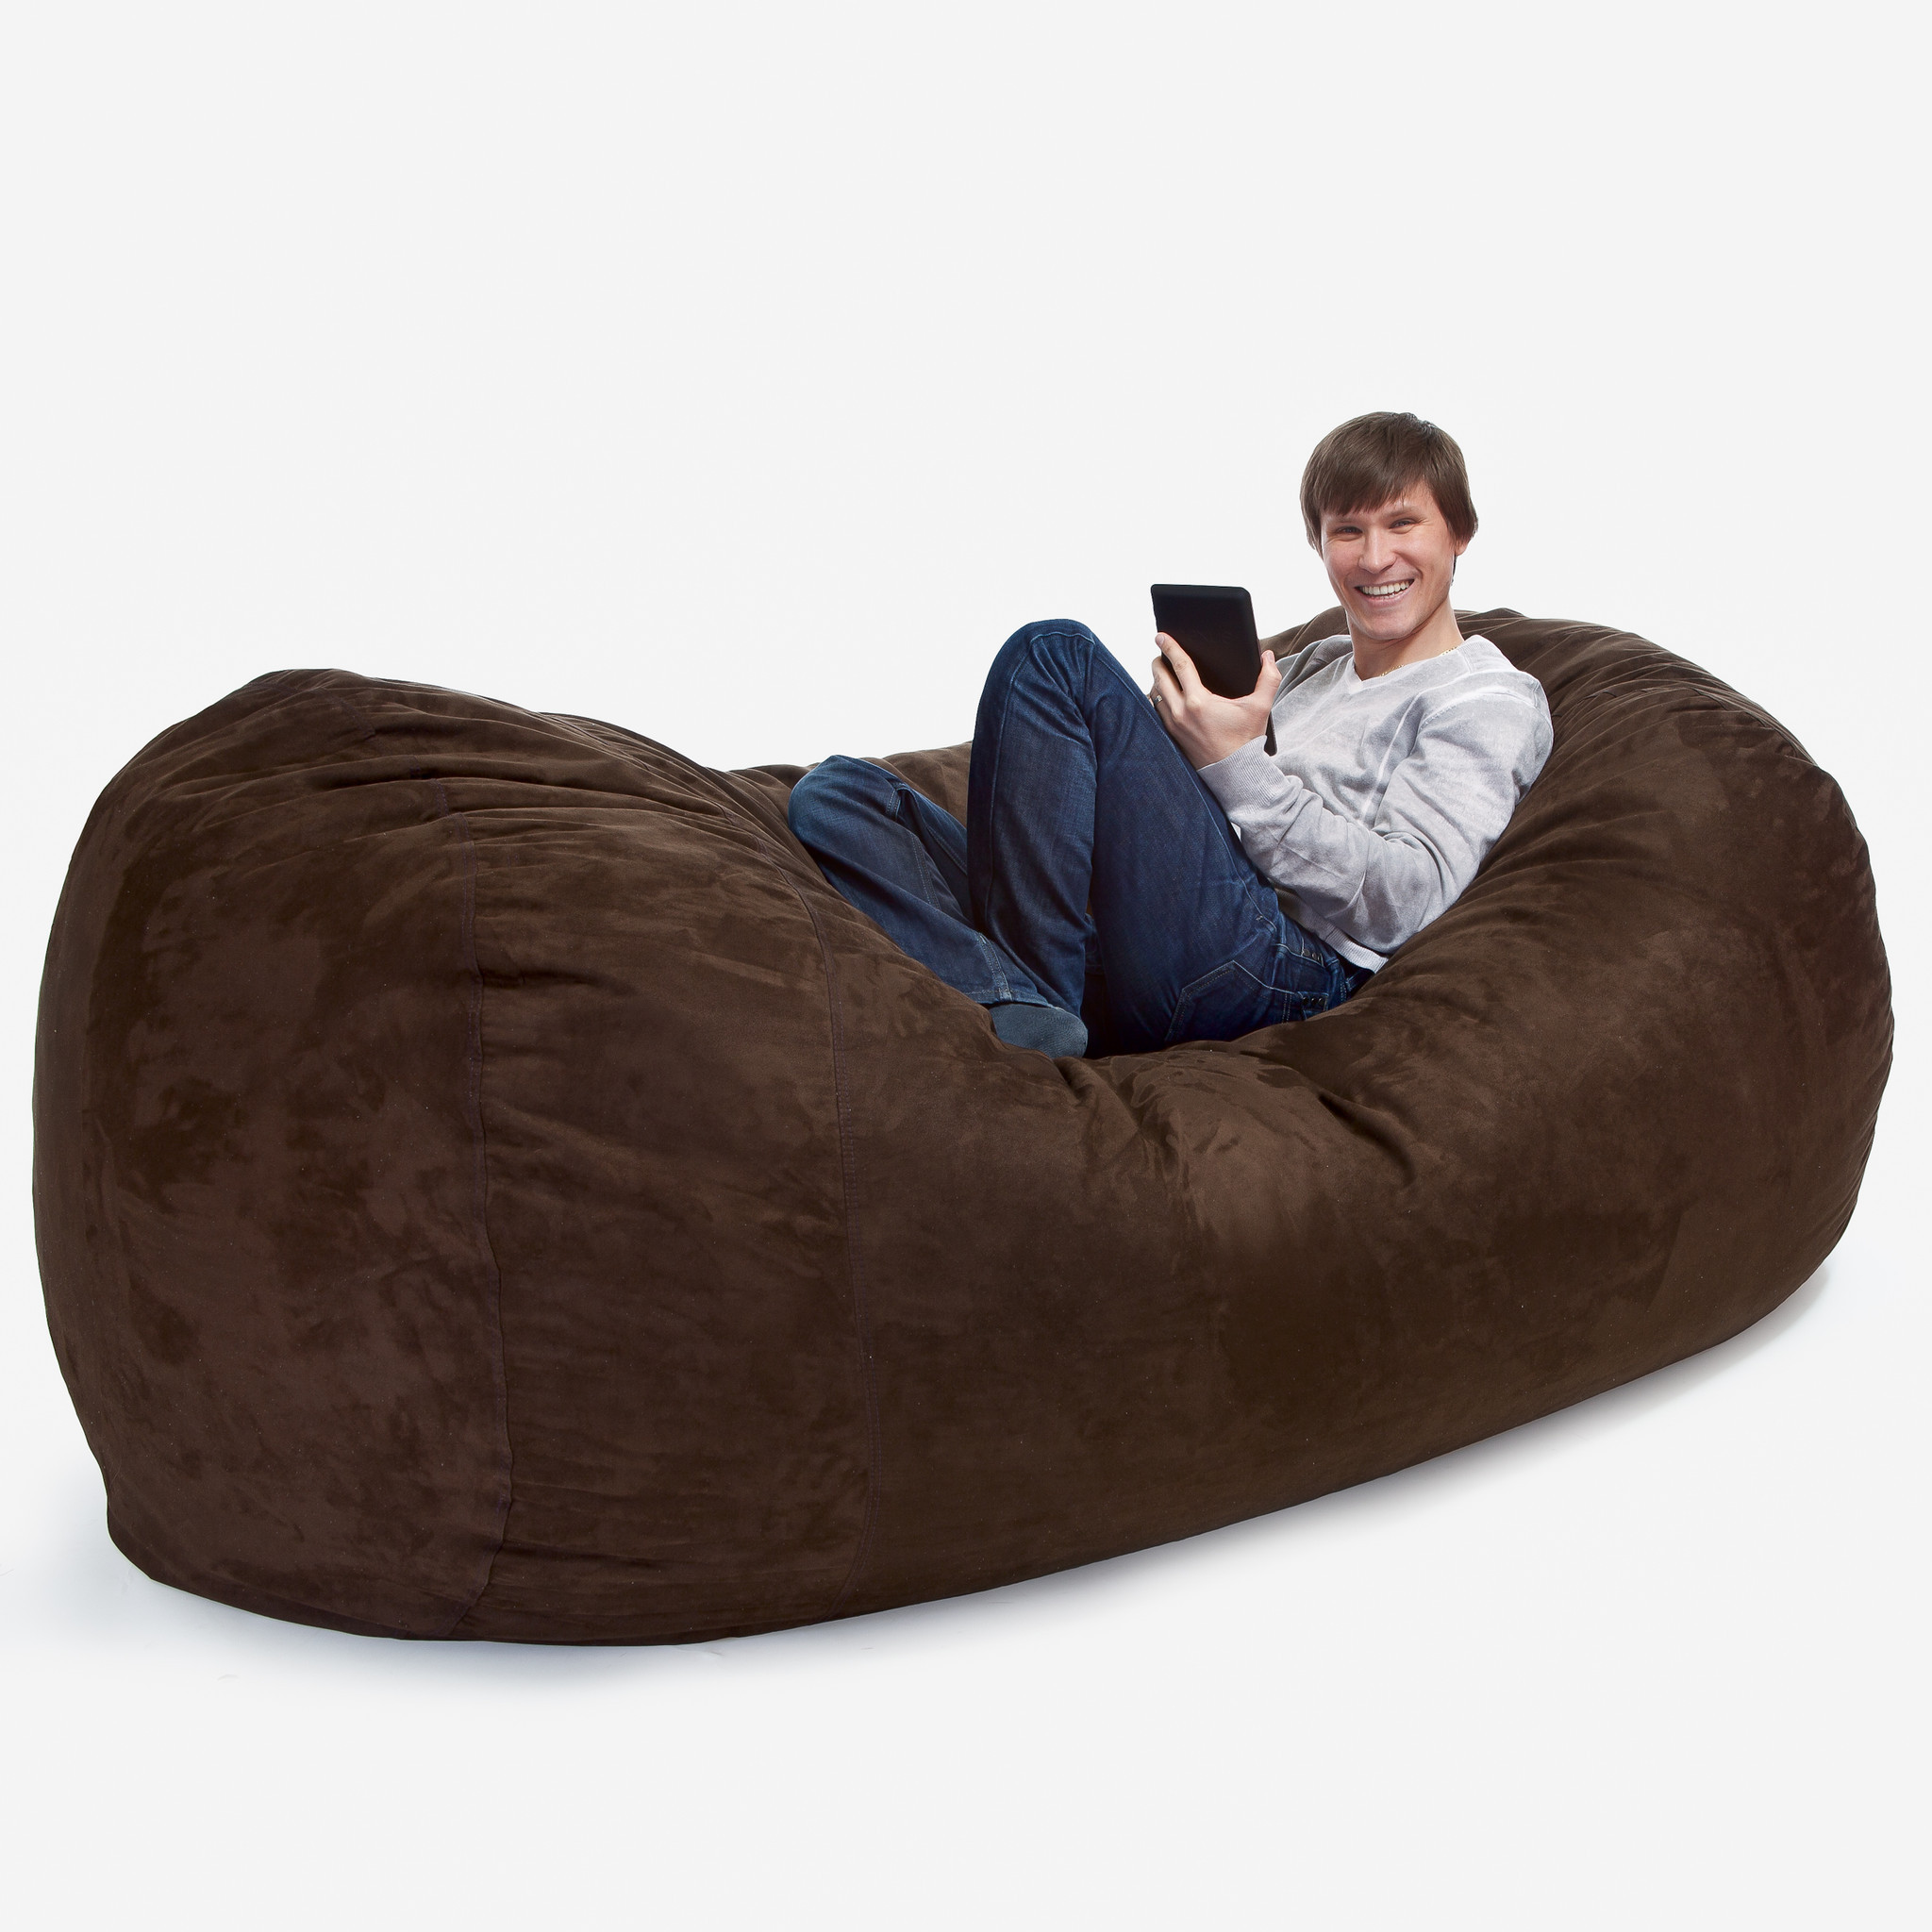 Pouf Chair 7 Classy Adult Bean Bags Room And Bath